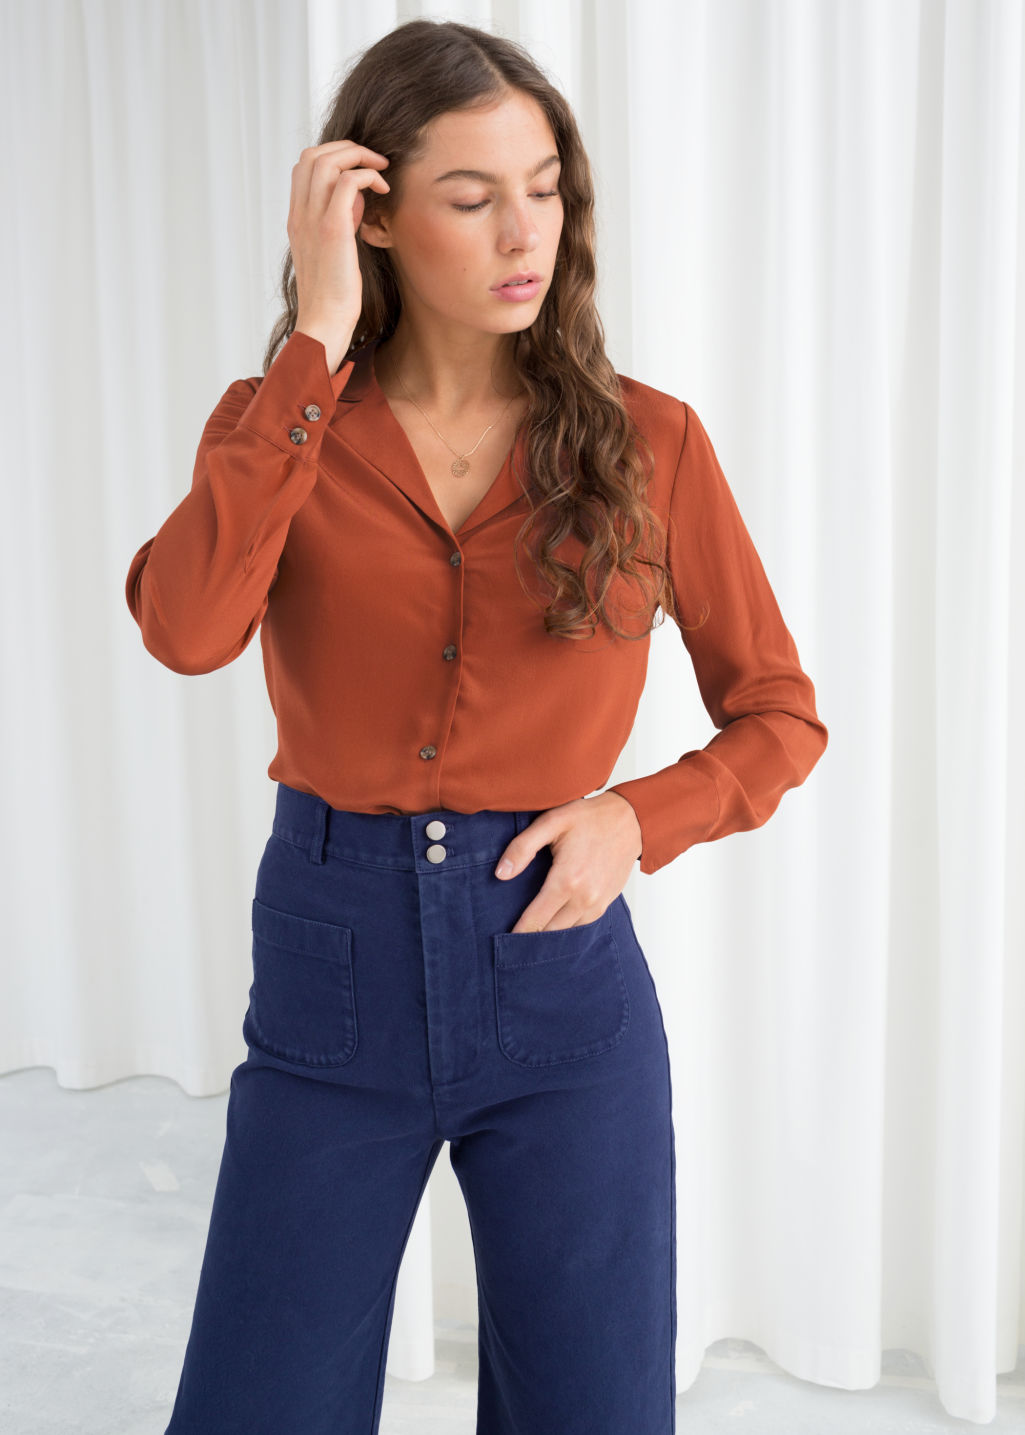 c297c094055b1 V-Cut Silk Button Up Blouse - Rust - Shirts -   Other Stories